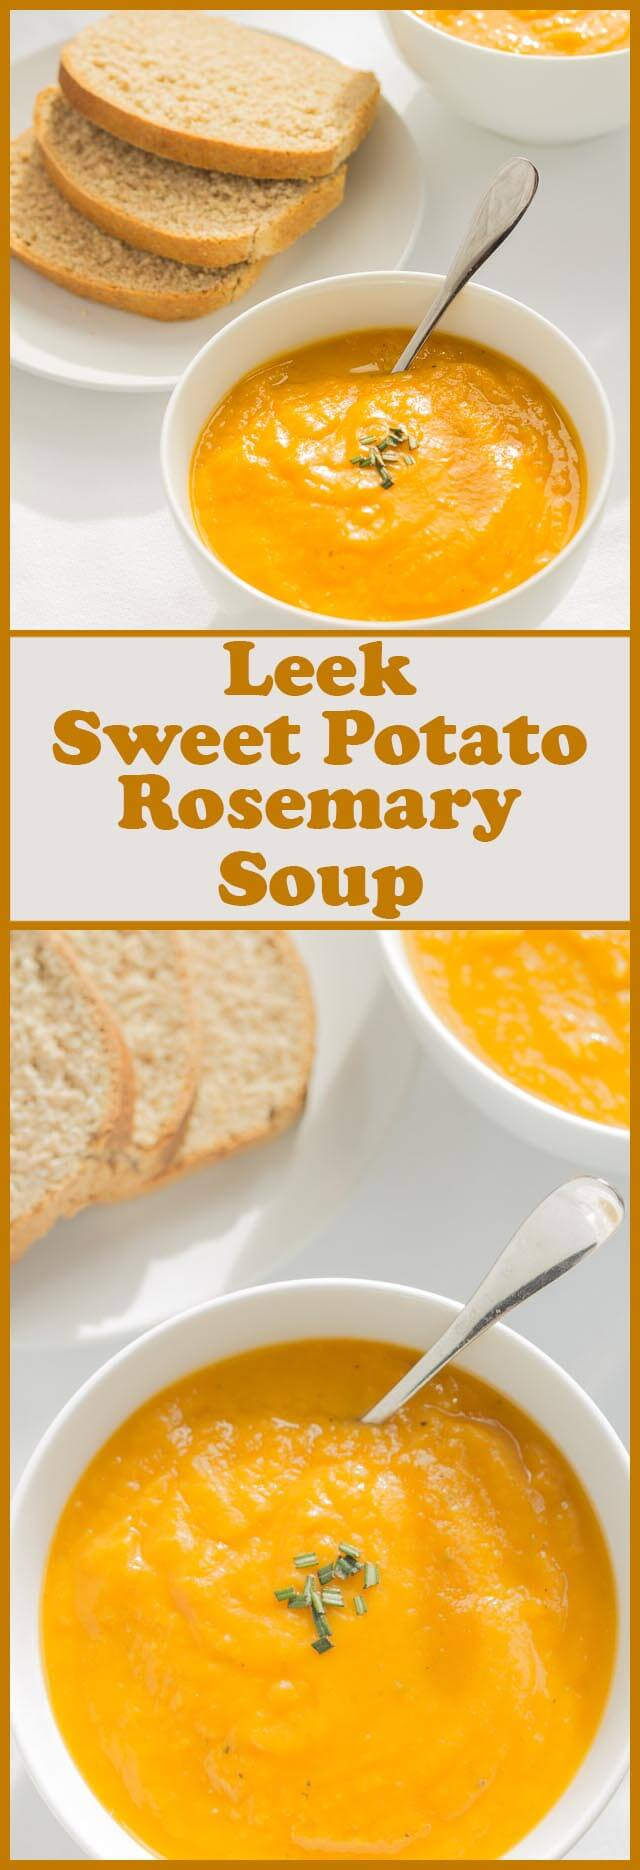 This leek, sweet potato and rosemary soup is addictive. The combination of flavours marinates together perfectly creating such a delicious creamy comfort soup. Not only that, it's really simple and quick to make too, with only five ingredients.